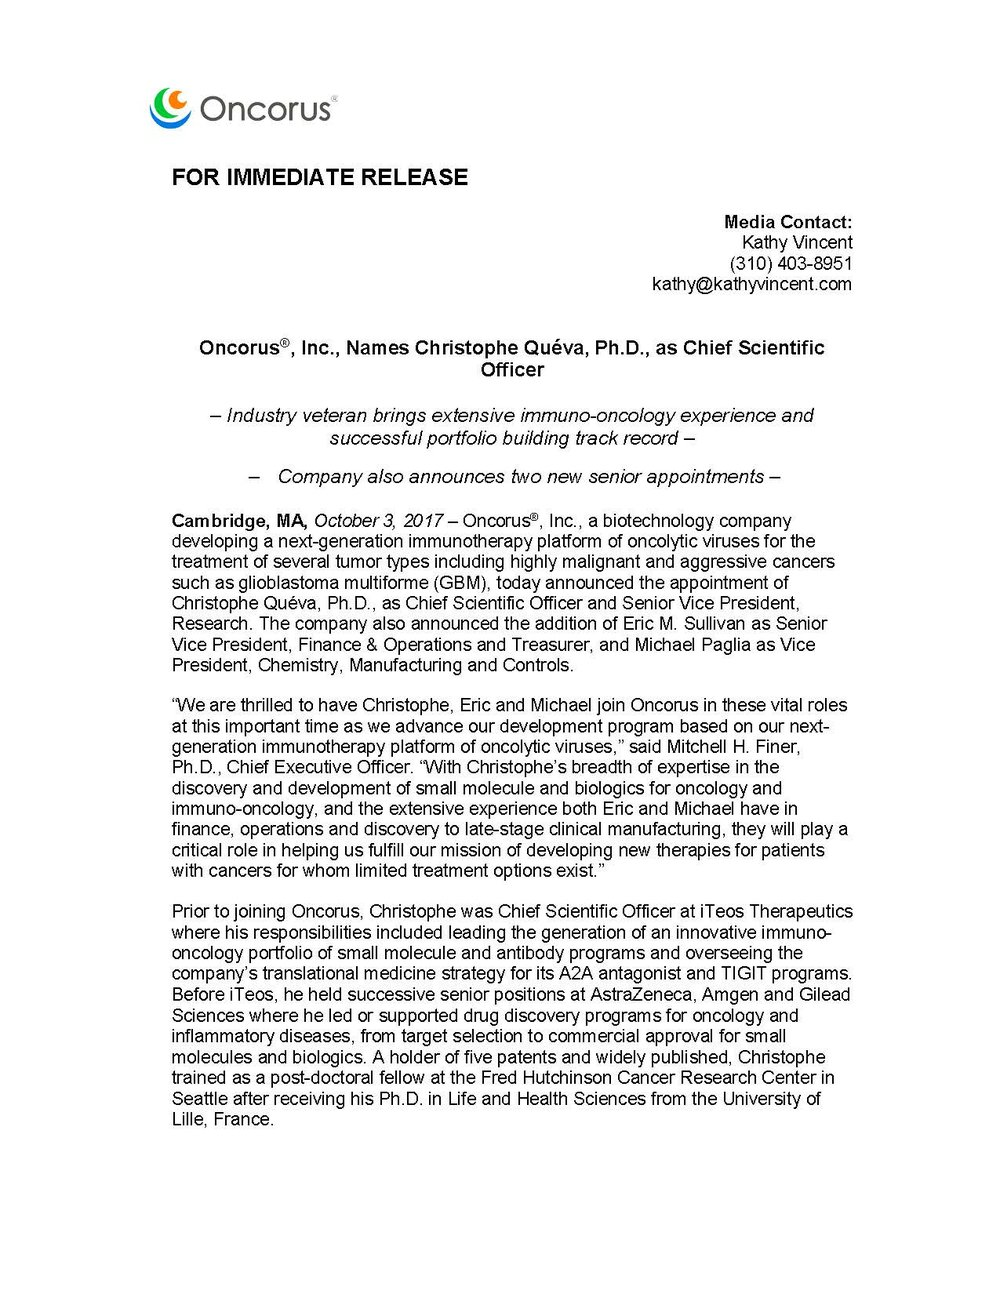 Oncorus Queva et al Appointment Press Release APPROVED 100317 9aET_Page_1.jpg